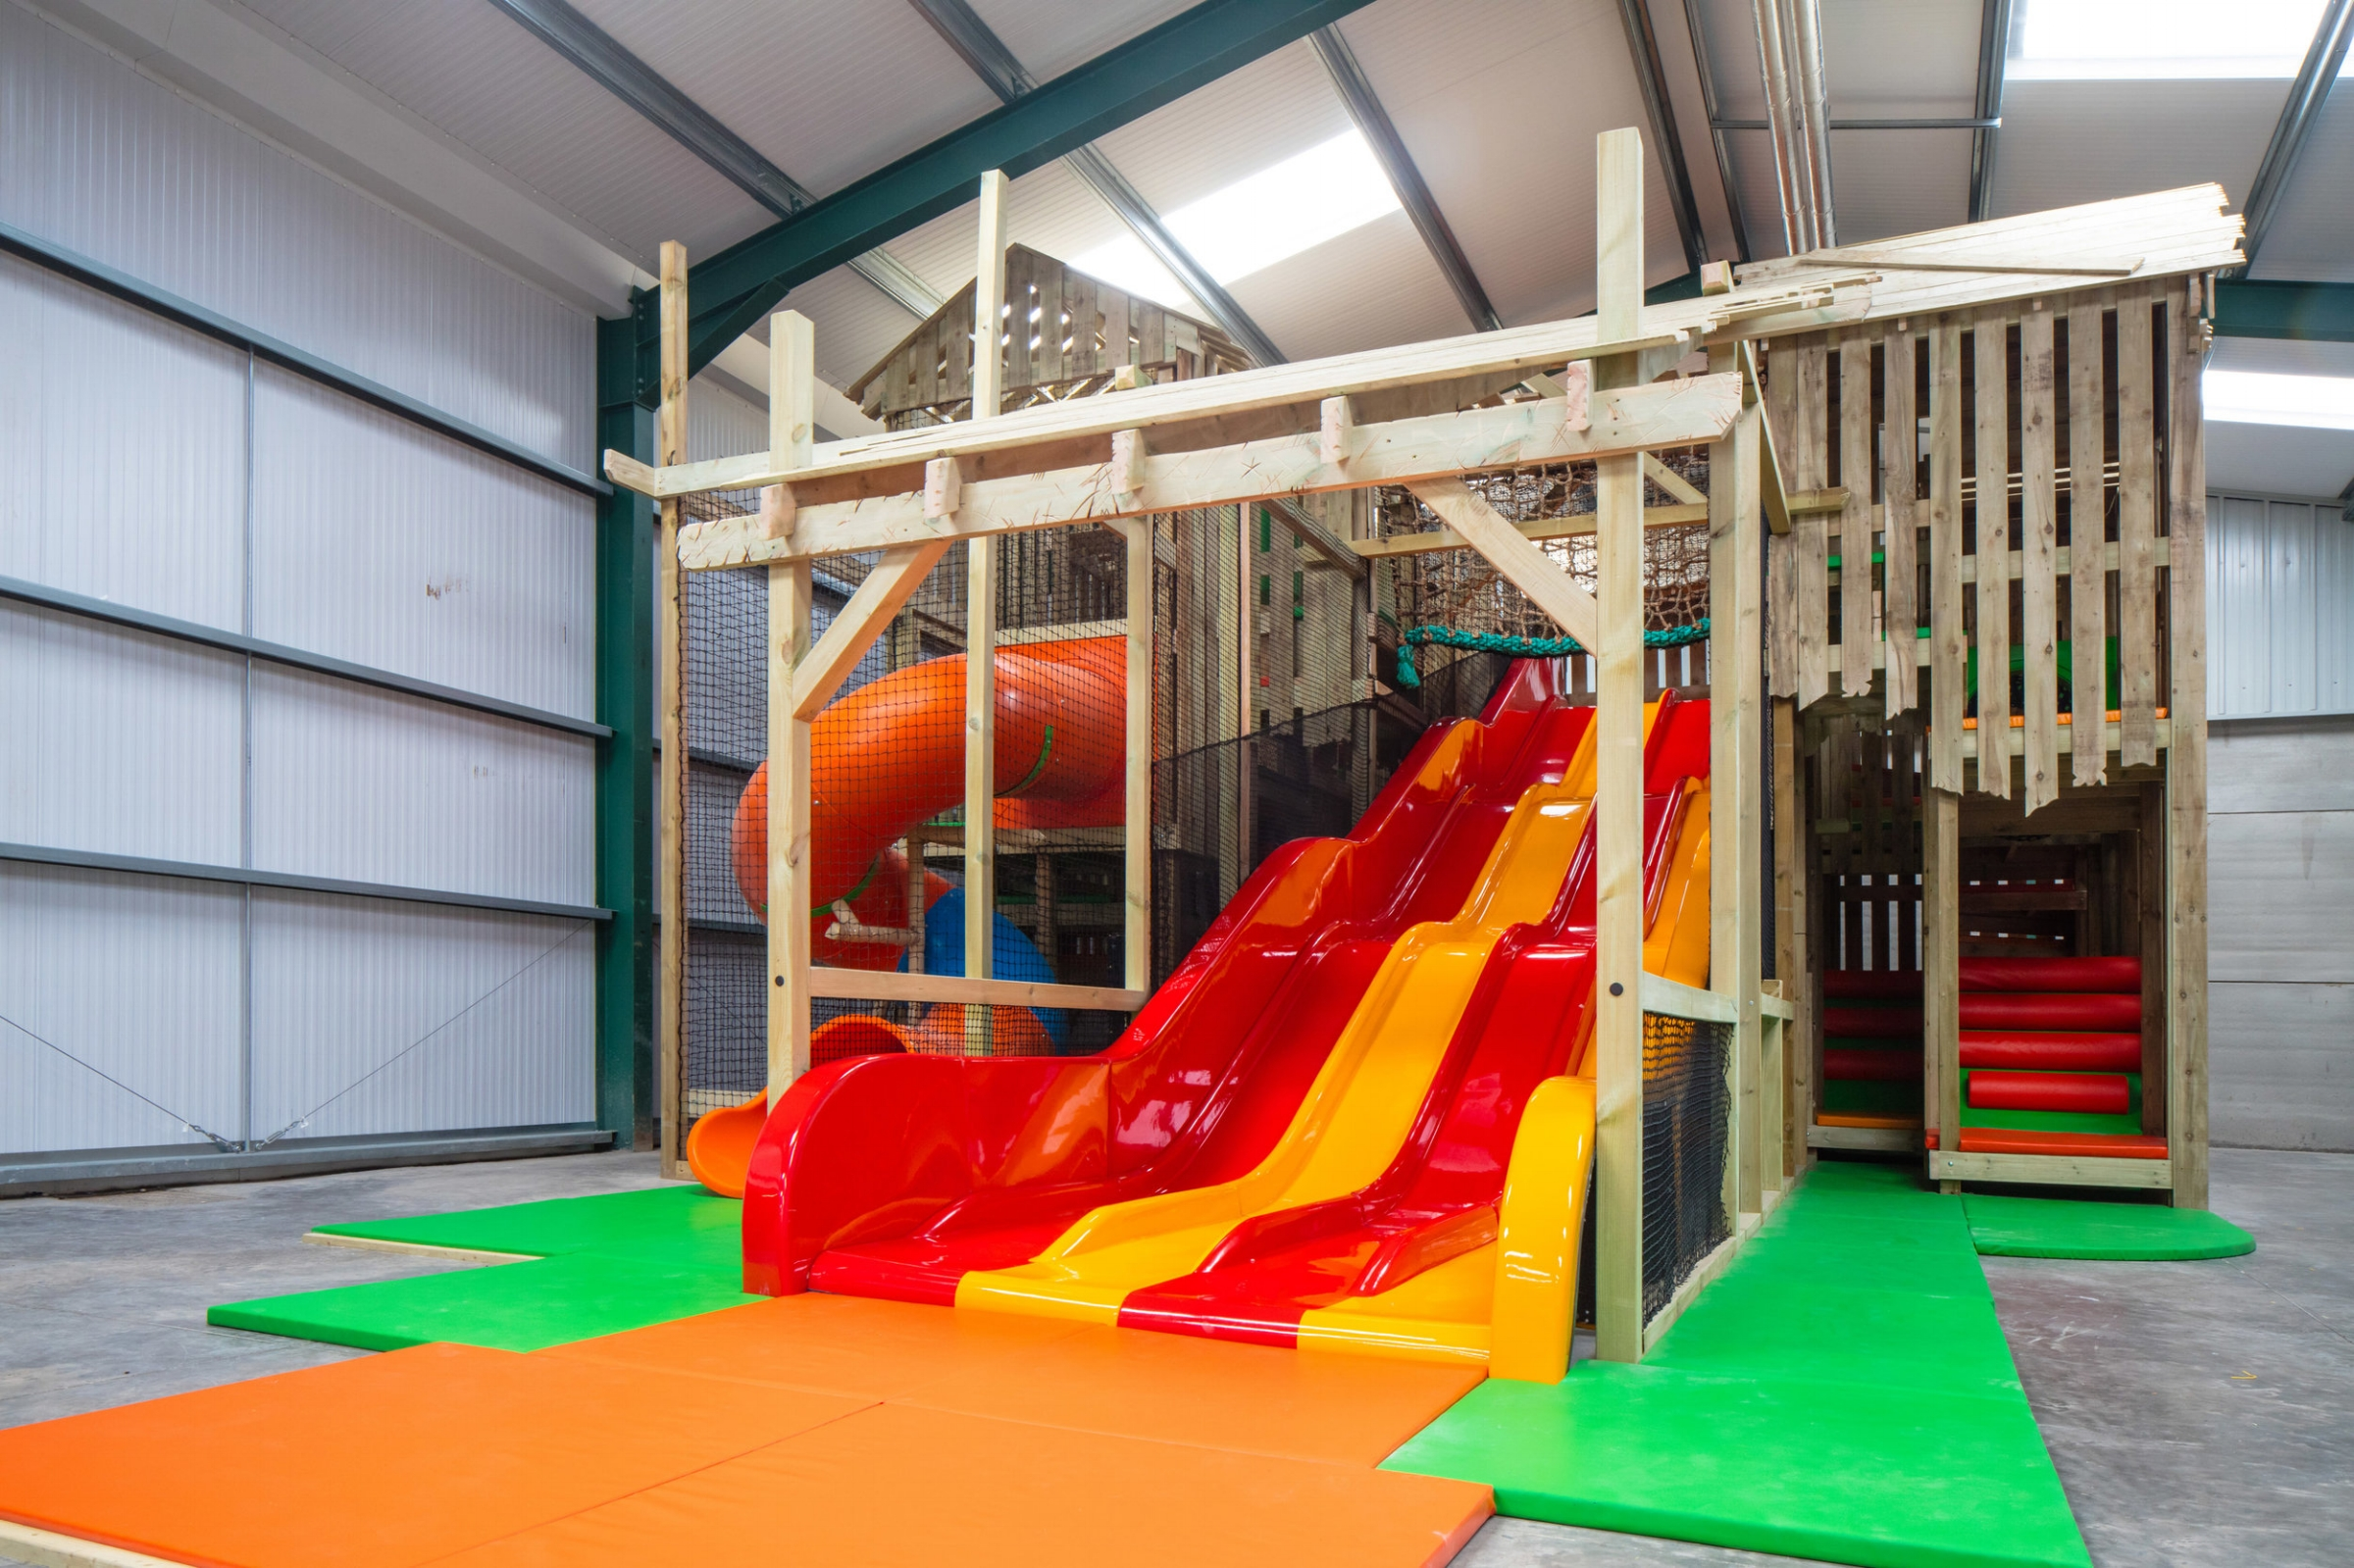 This play space is now a stand-out play feature at Roves Farm.